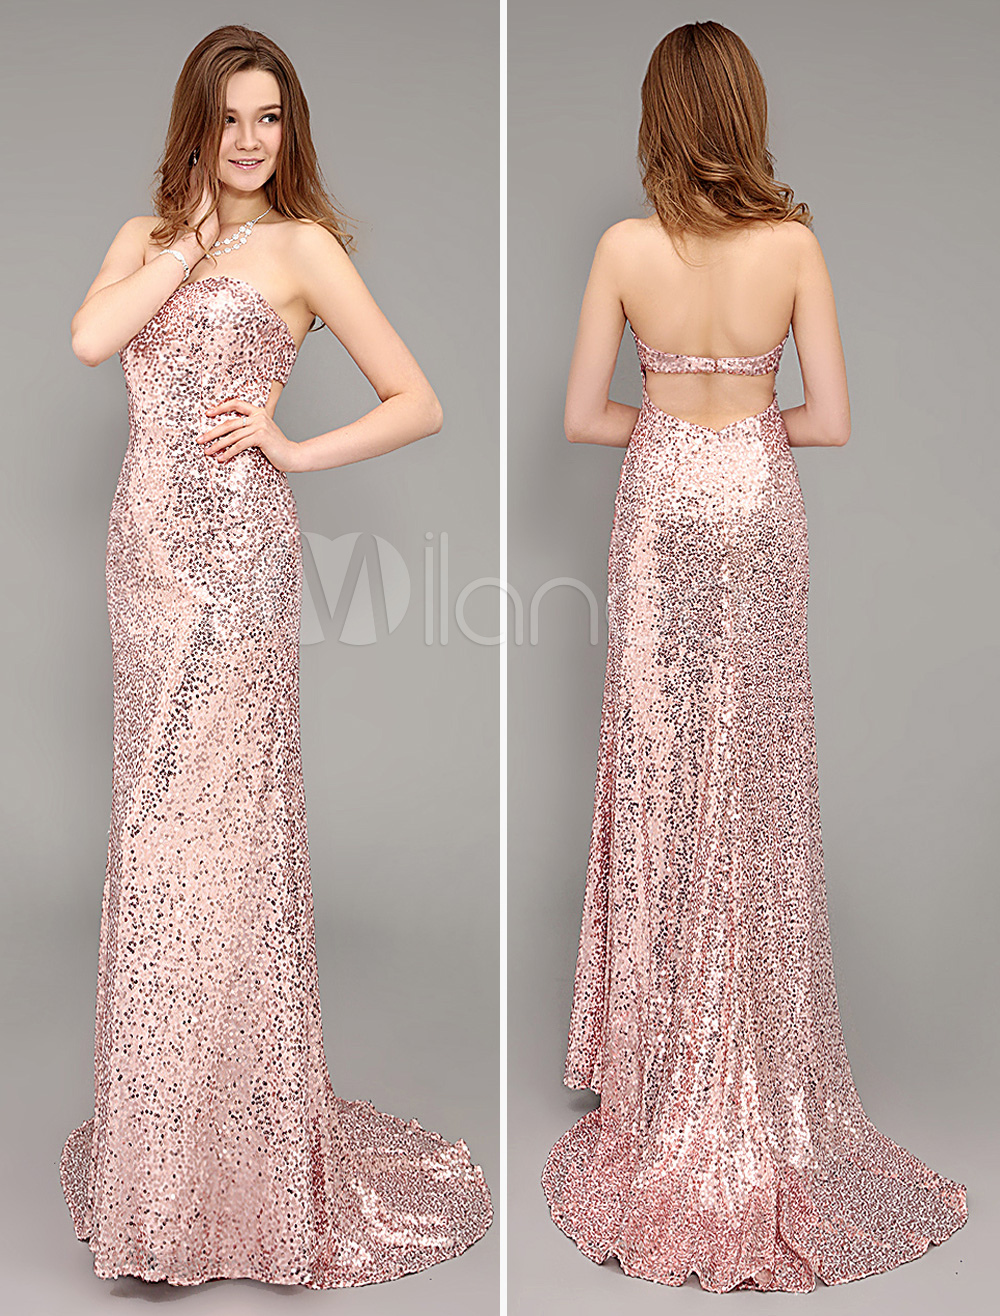 Rose Gold Prom Dresses 2018 Long Peach Sheath Strapless Backless Evening Dress Sequined Sweetheart Party Dress With Brush Train